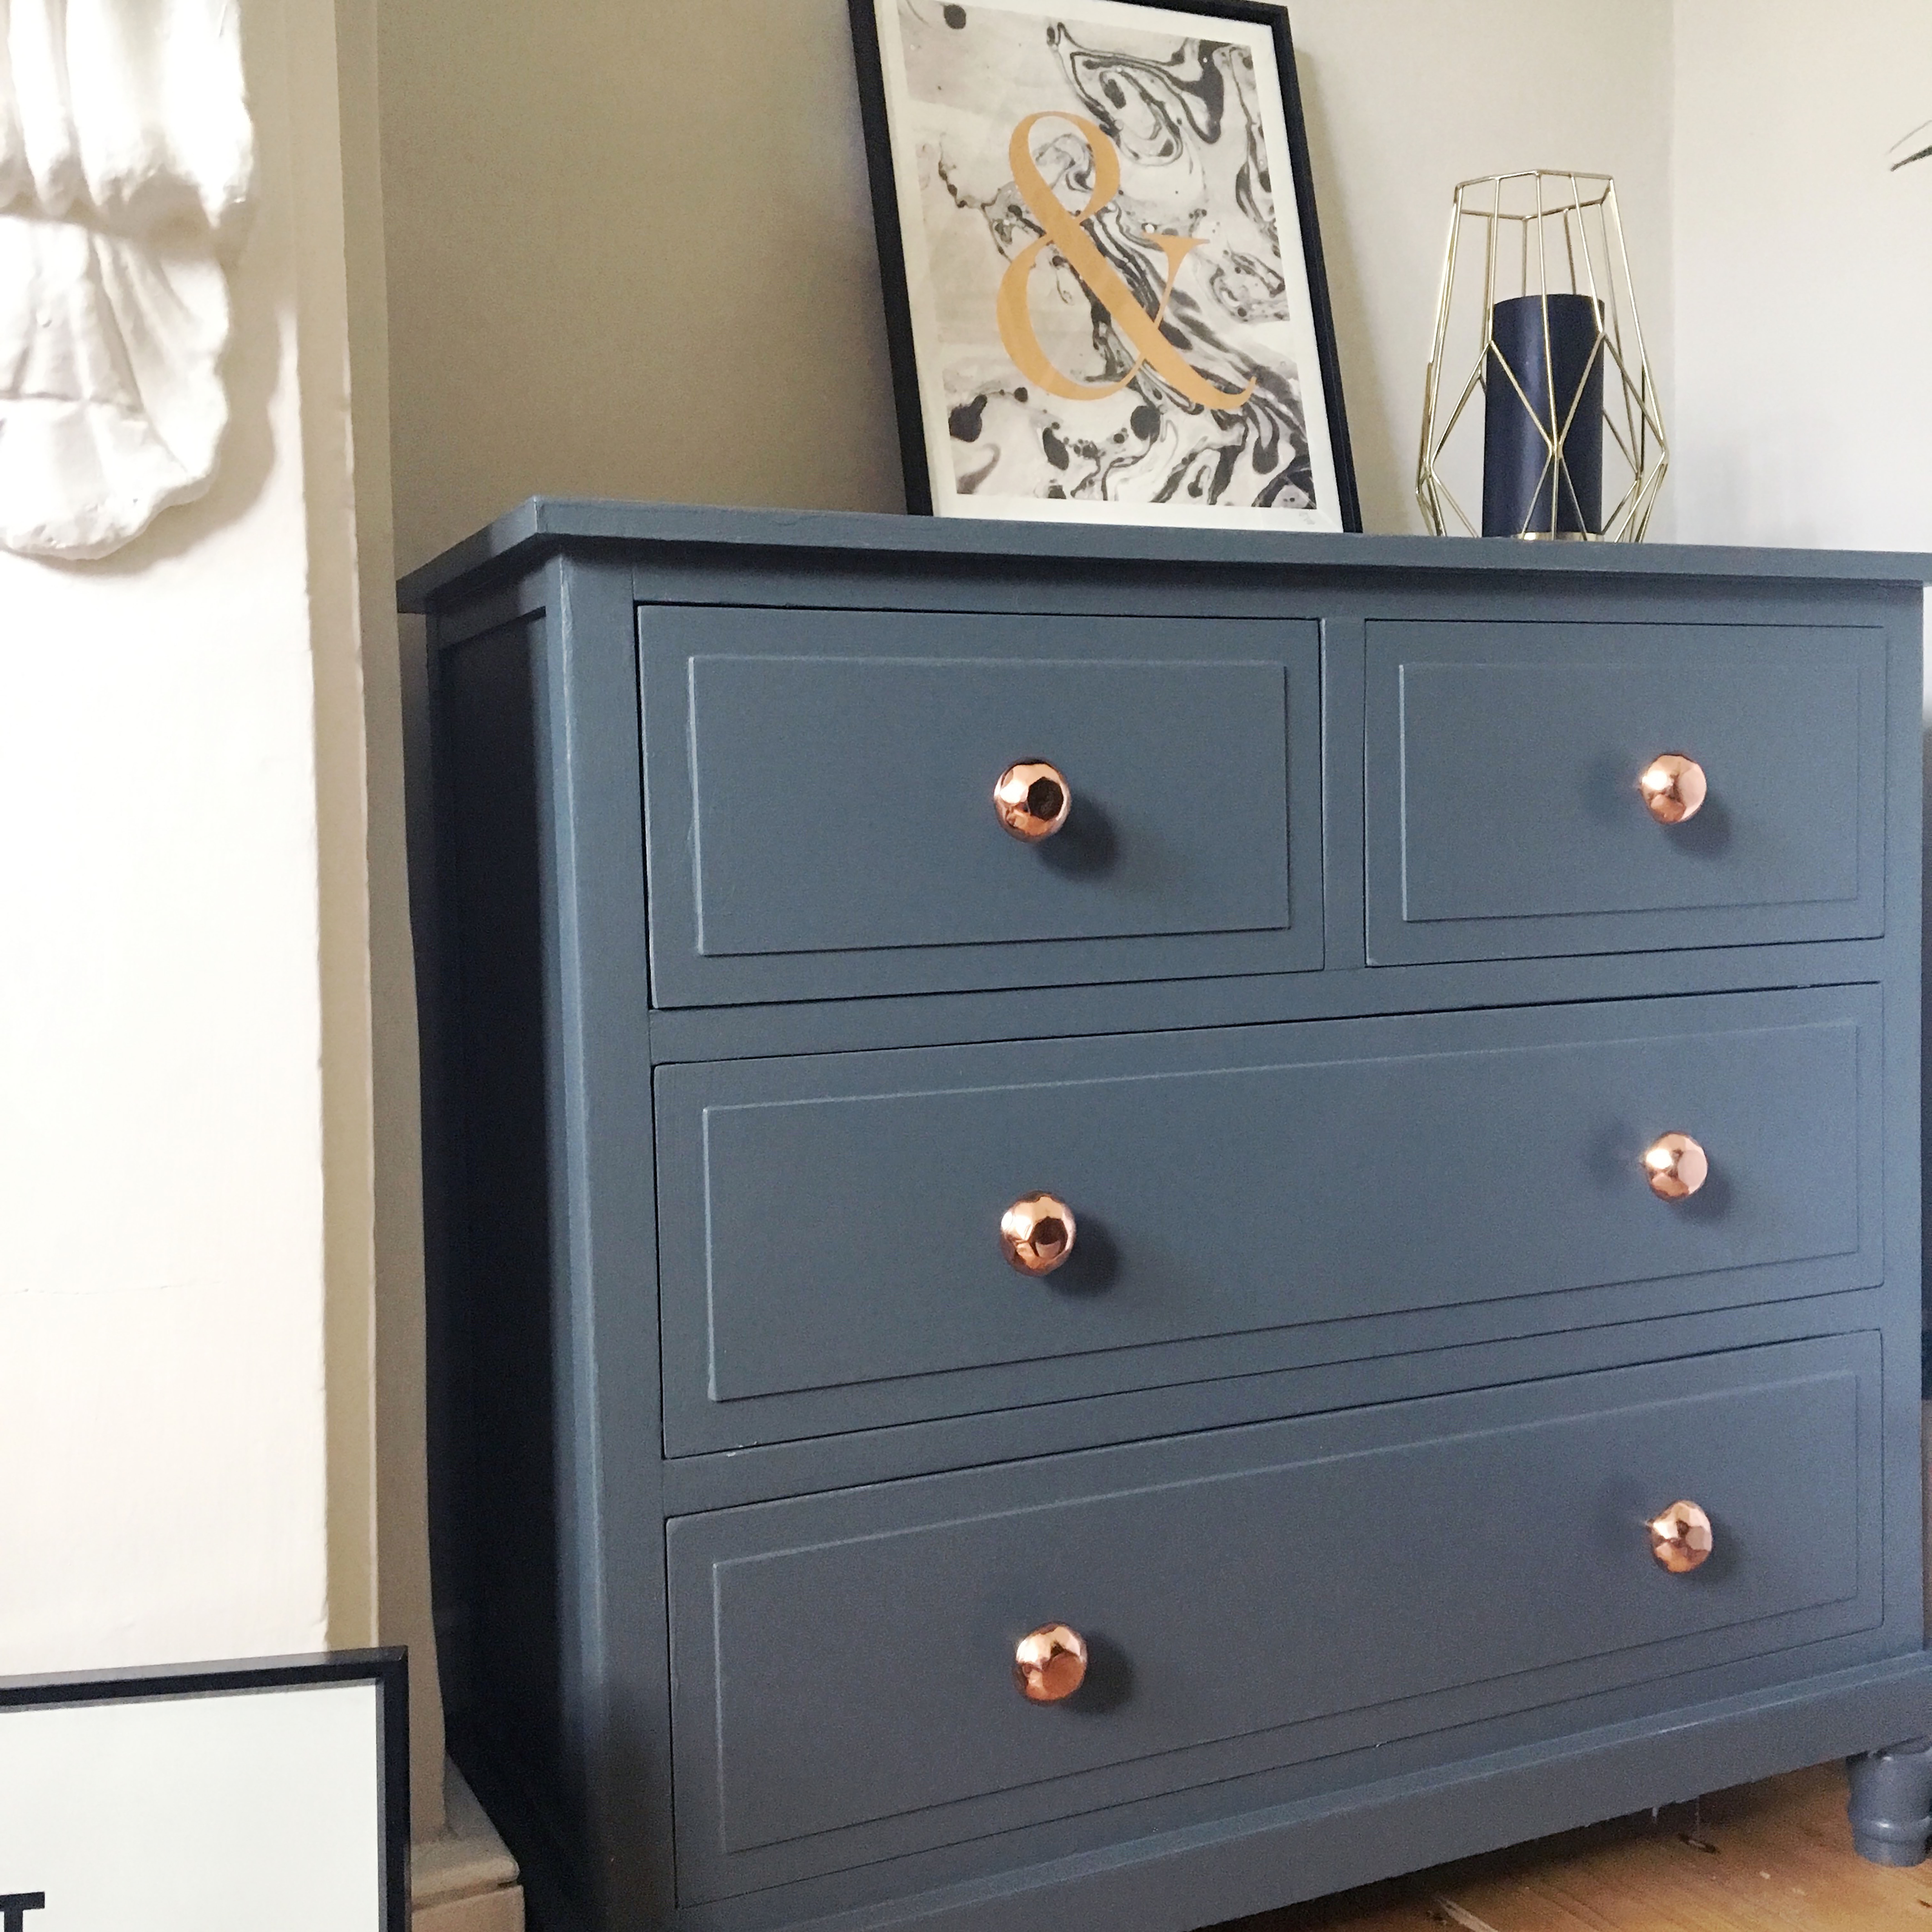 Painting Wooden Furniture How Not To Make Mistakes